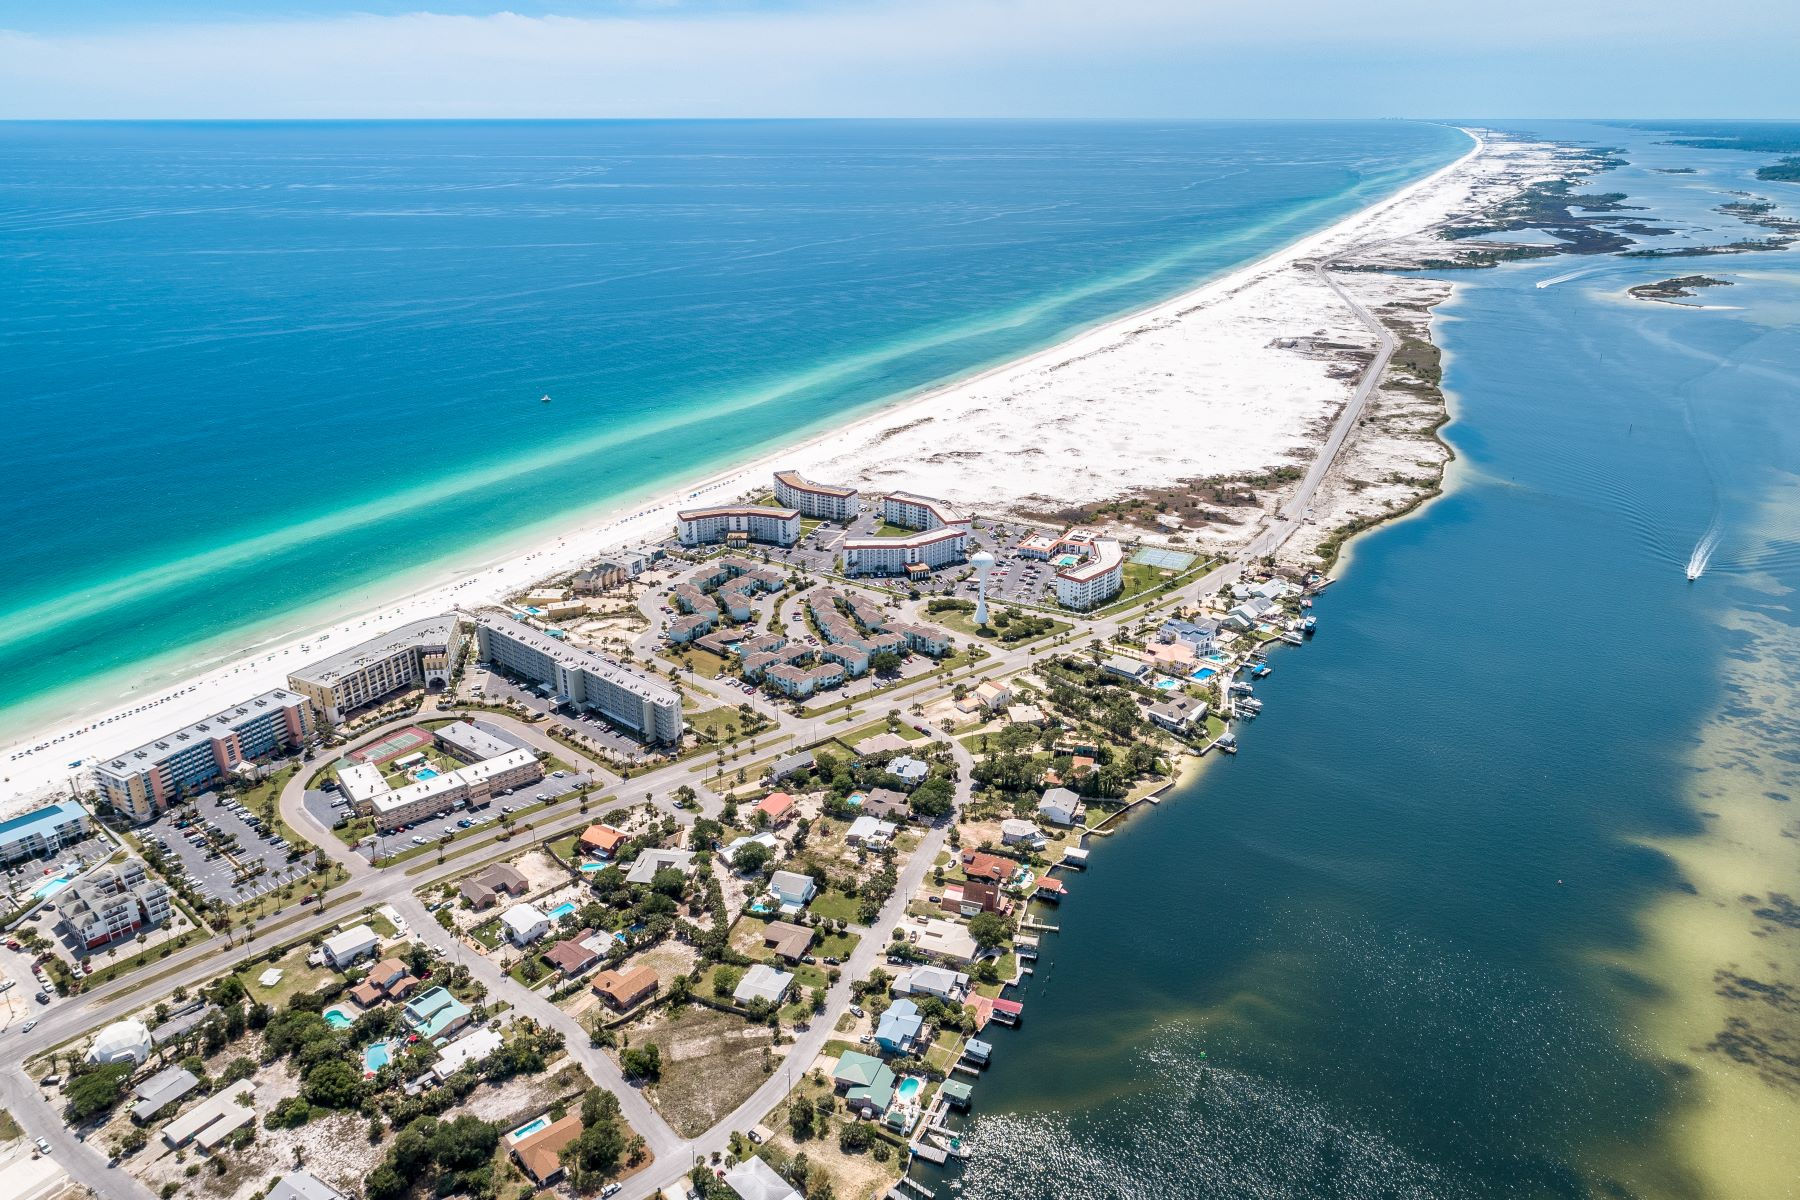 Land for Sale at Waterview Lot On Okaloosa Island with Nearby Fishing Pier 830 Tarpon Drive Fort Walton Beach, Florida 32548 United States